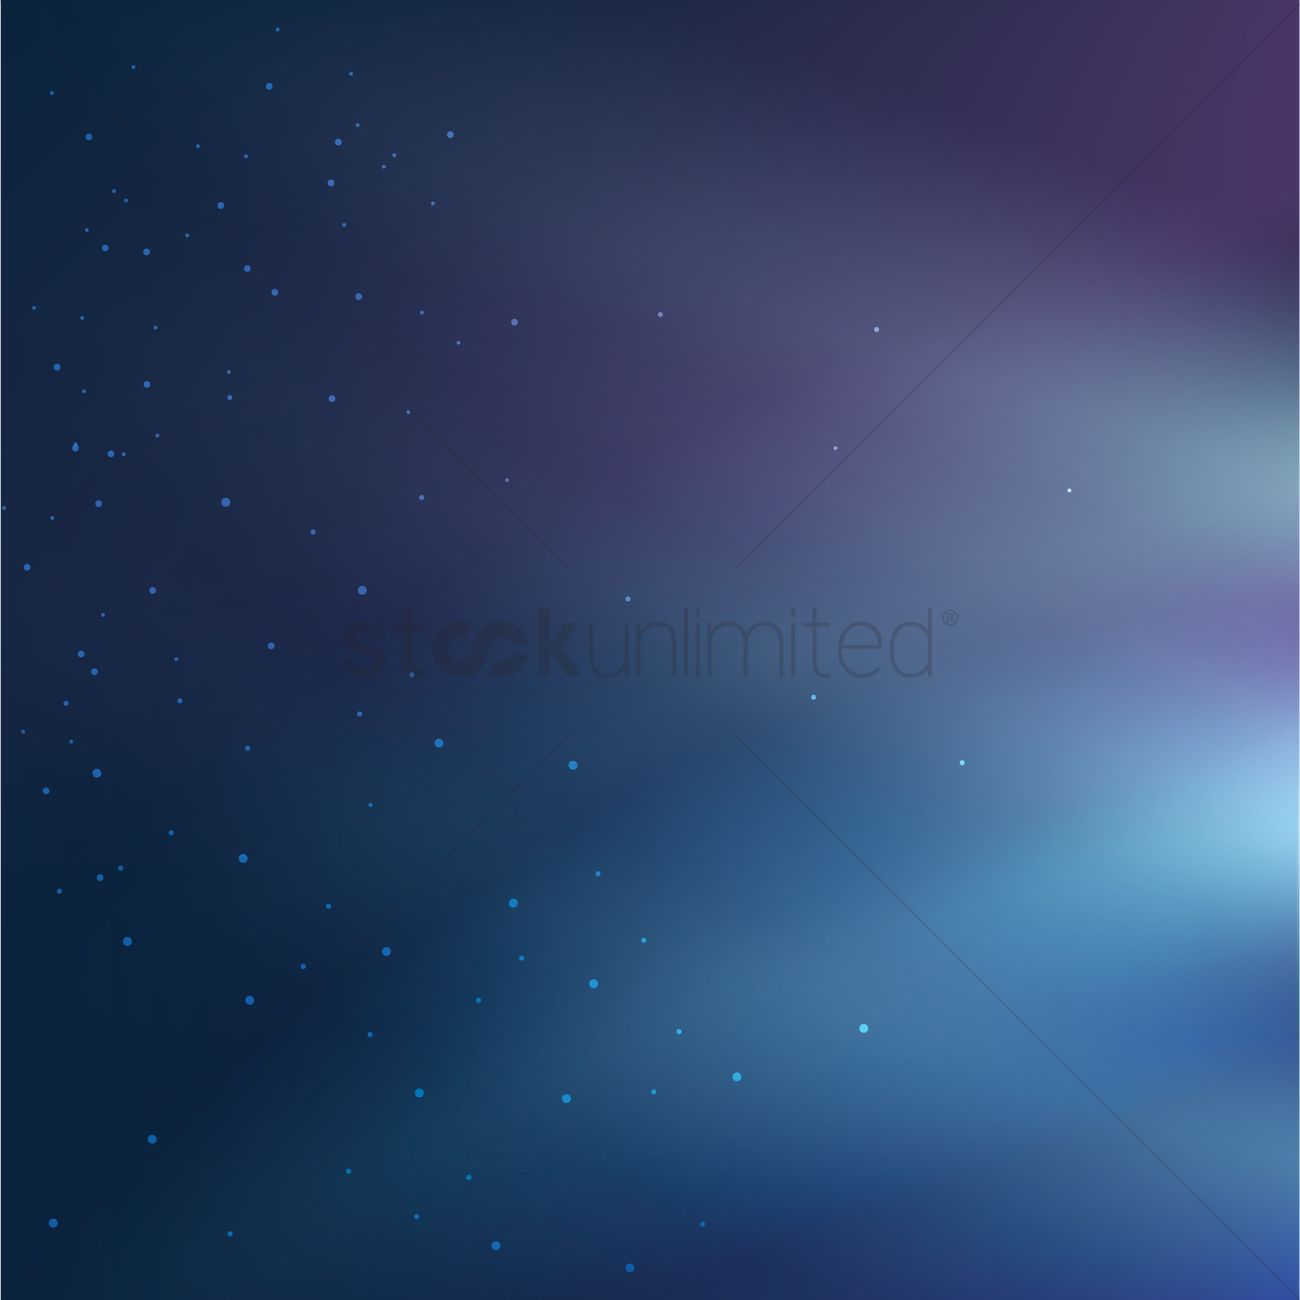 Dark Blue Background Vector at GetDrawings com | Free for personal